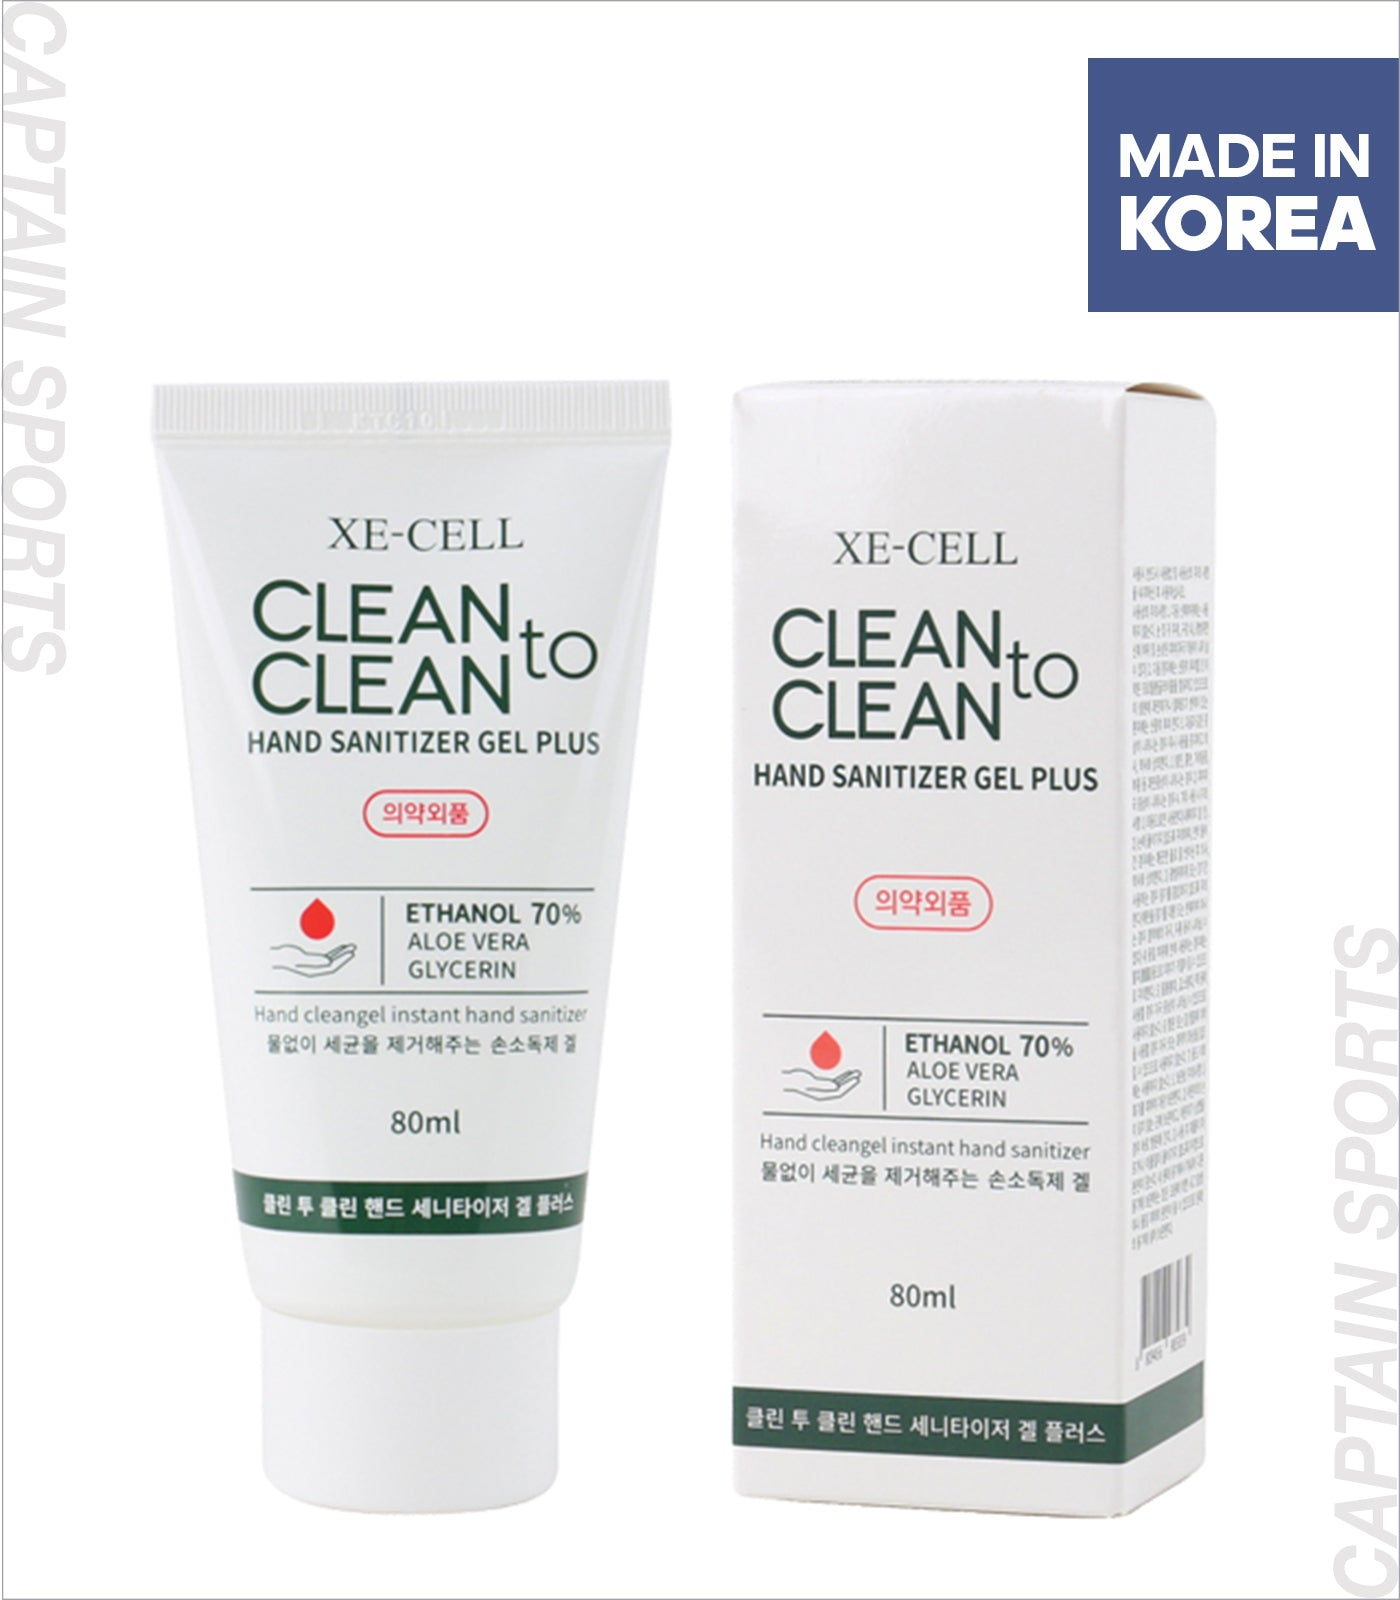 XE-CELL Clean to Clean Hand Sanitizer Gel Plus